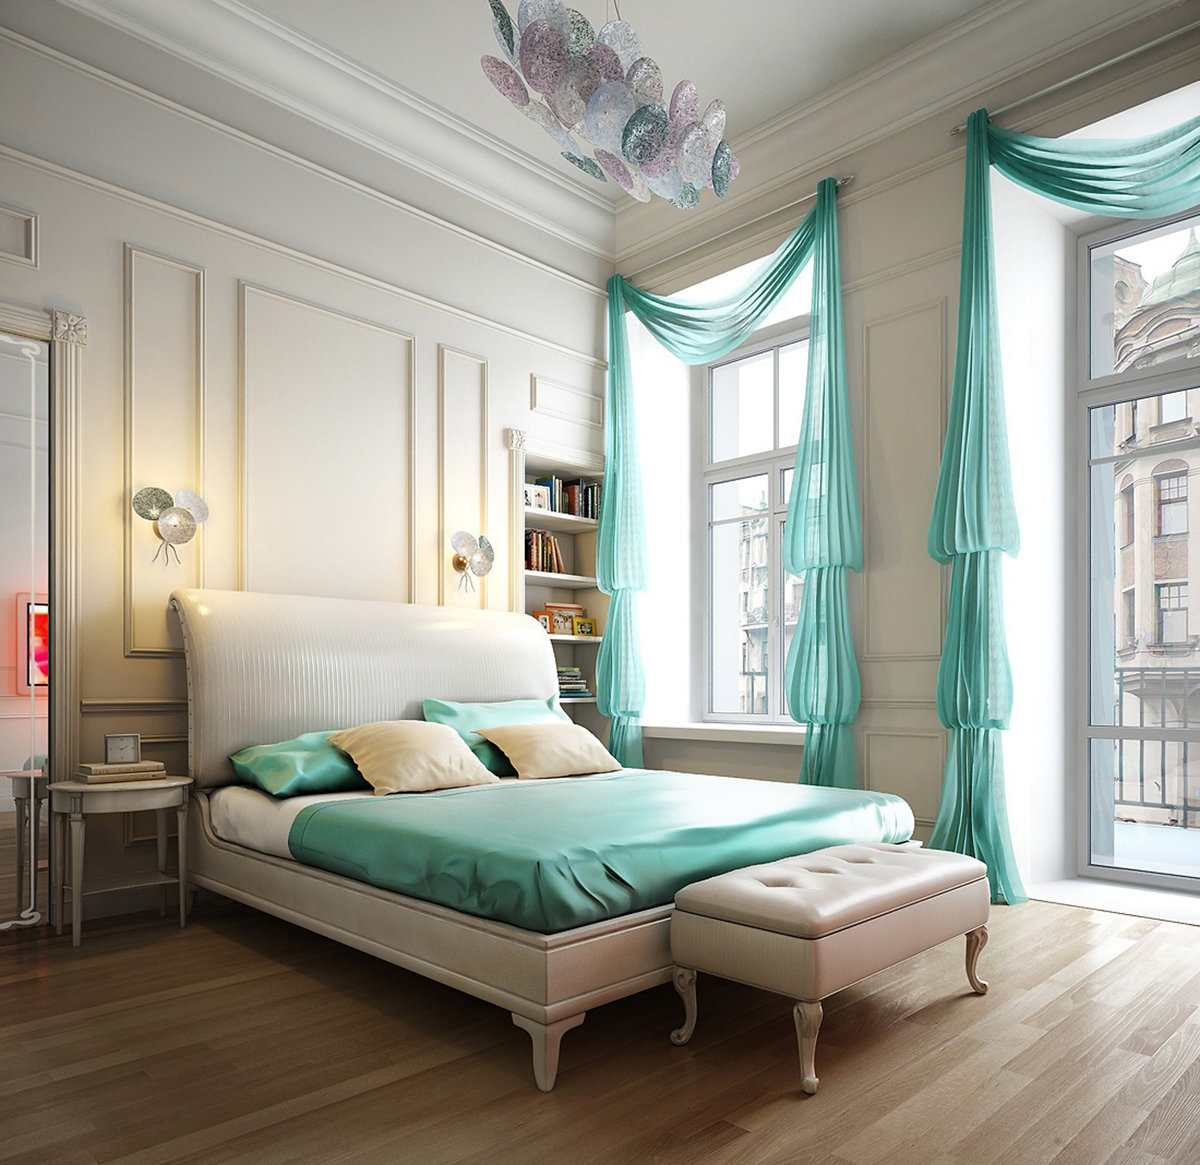 Cozy Feminine Bedroom Ideas for Relaxation and Boosting Your Energy. Bold turquoise color in your bedroom